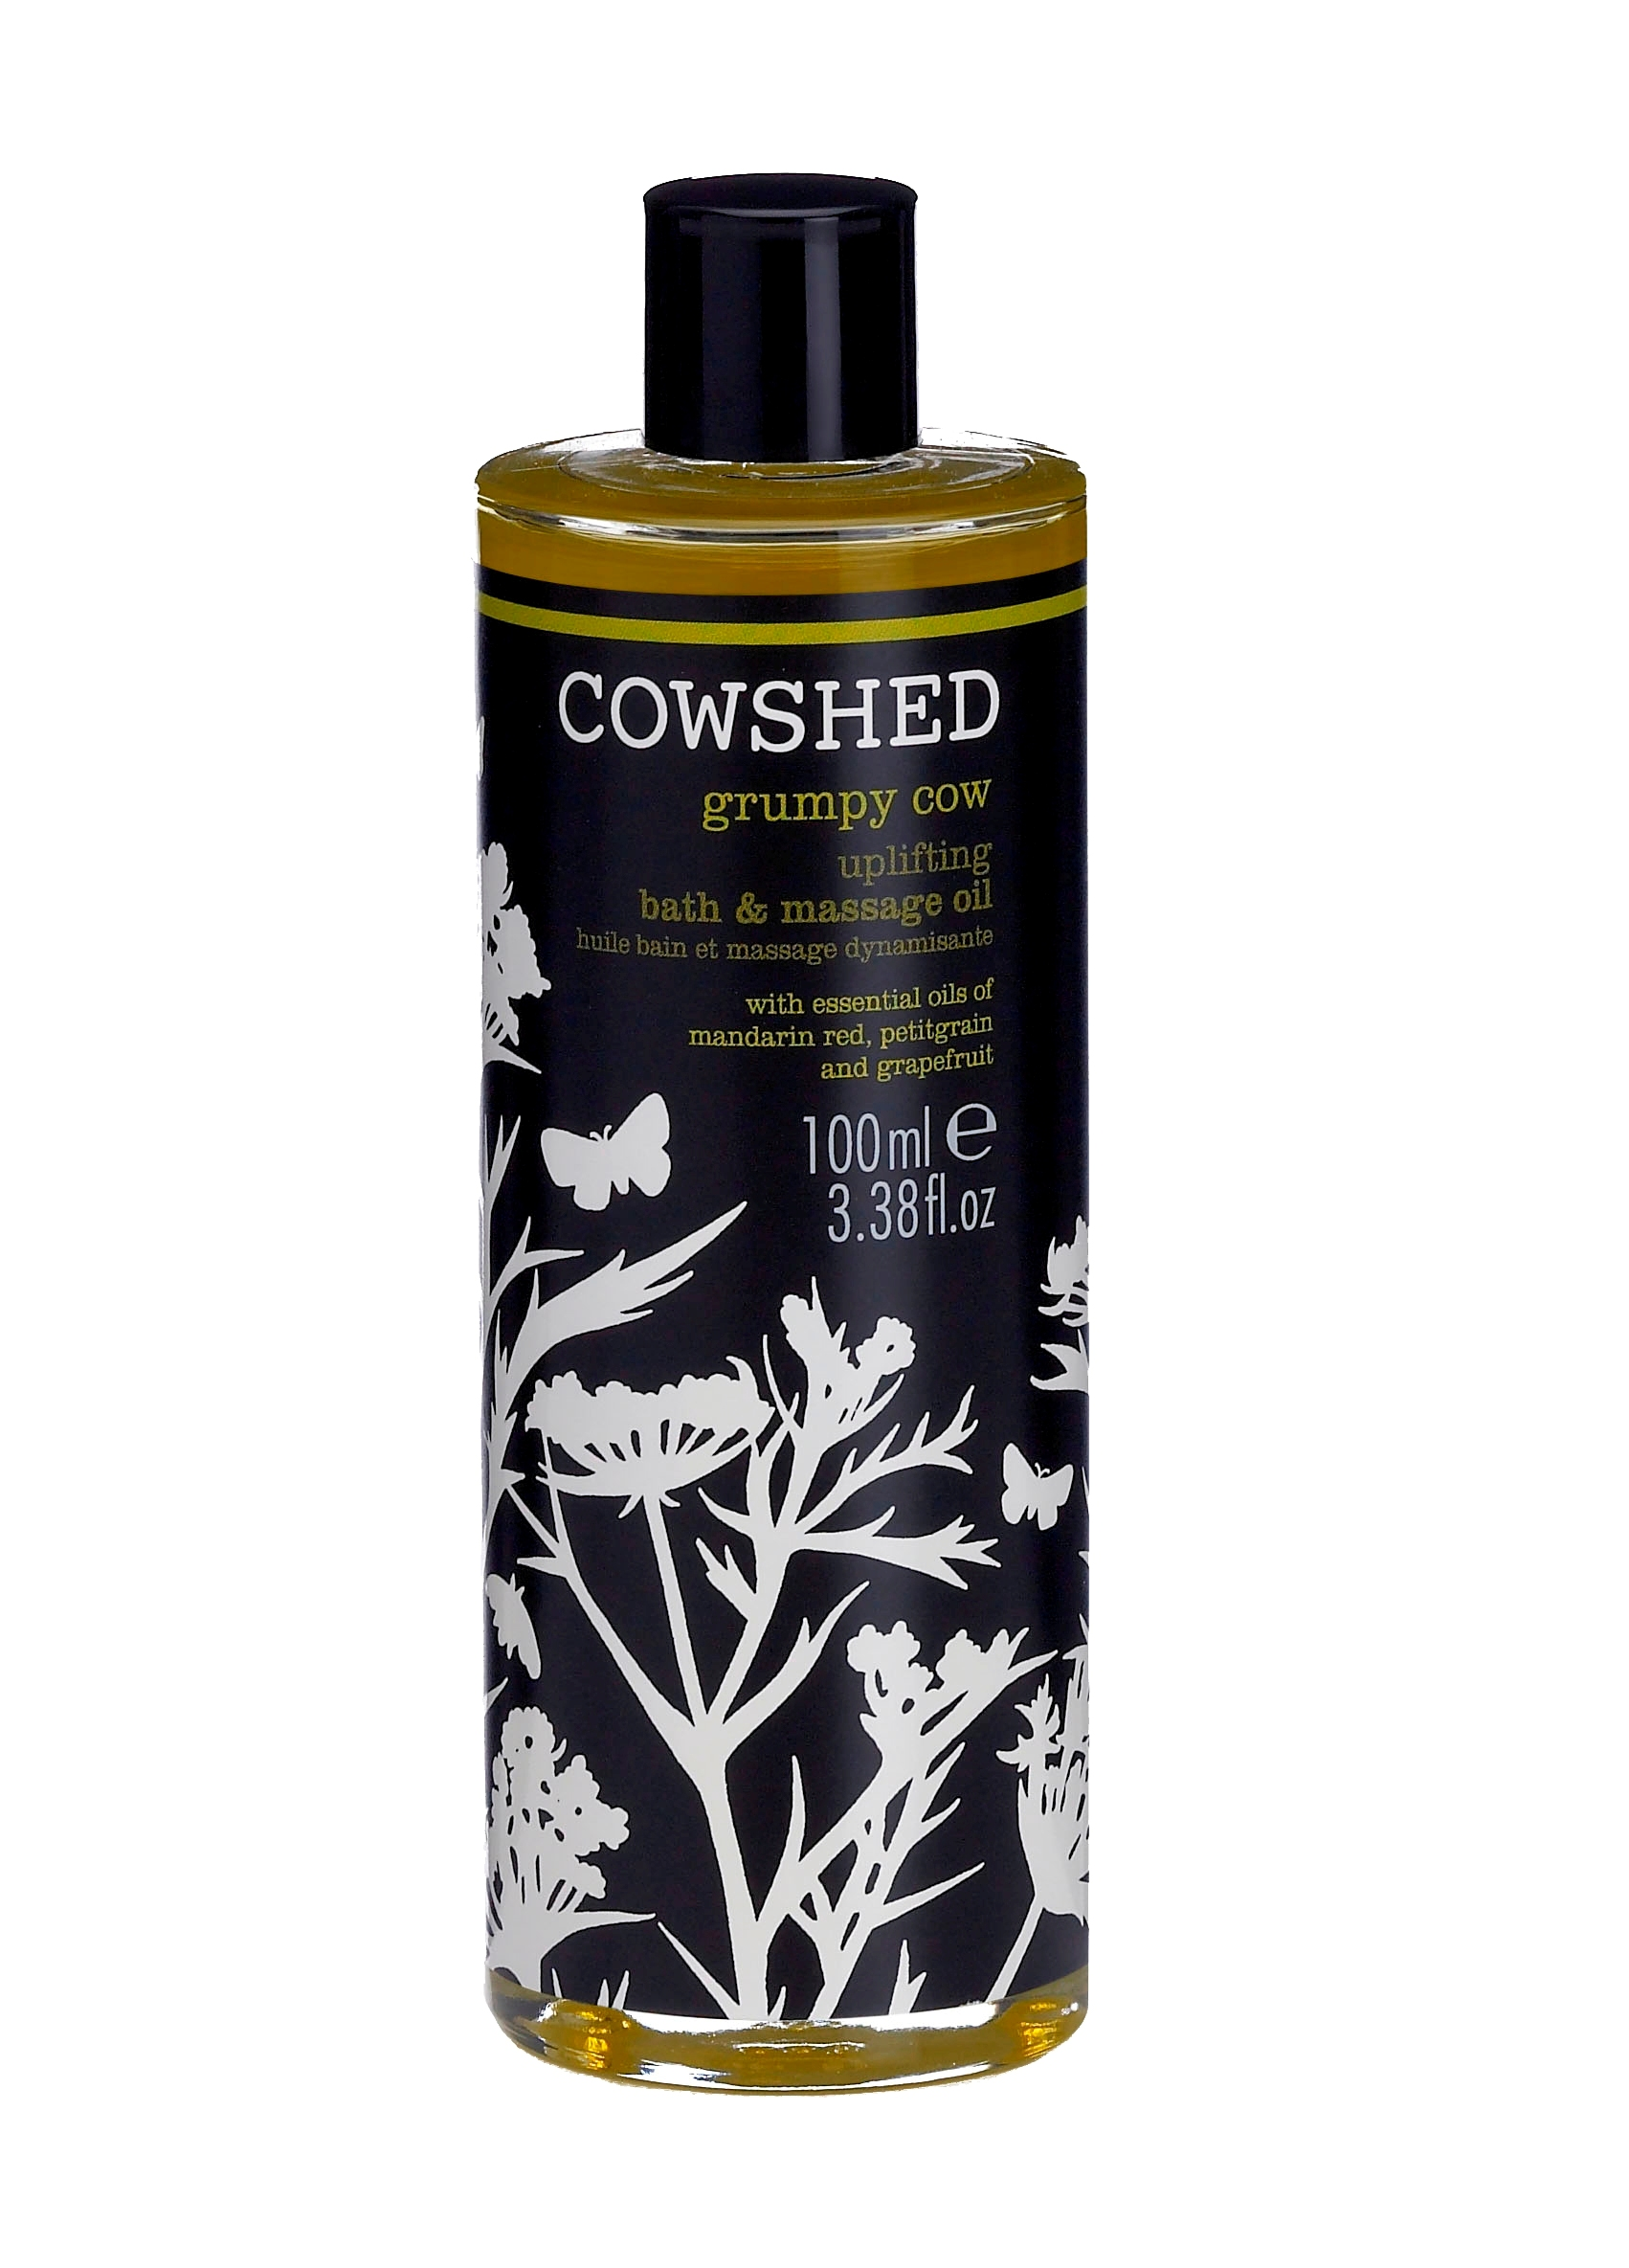 Billede af Cowshed Grumpy Cow Uplifting Bath & Massage Oil 100 ml.